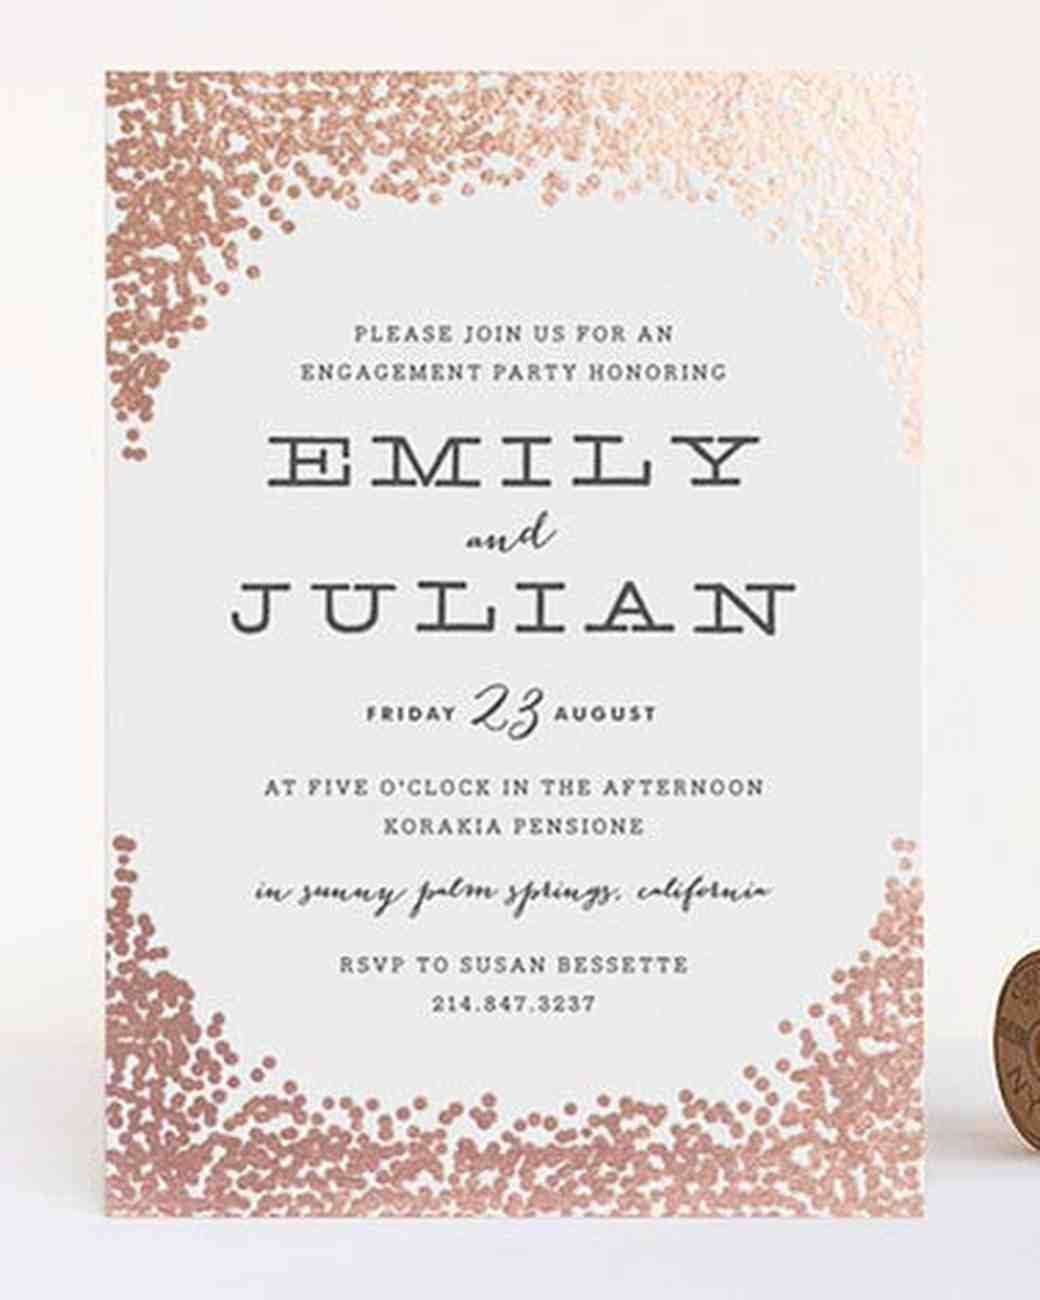 15 Engagement Party Invitations | Martha Stewart Weddings